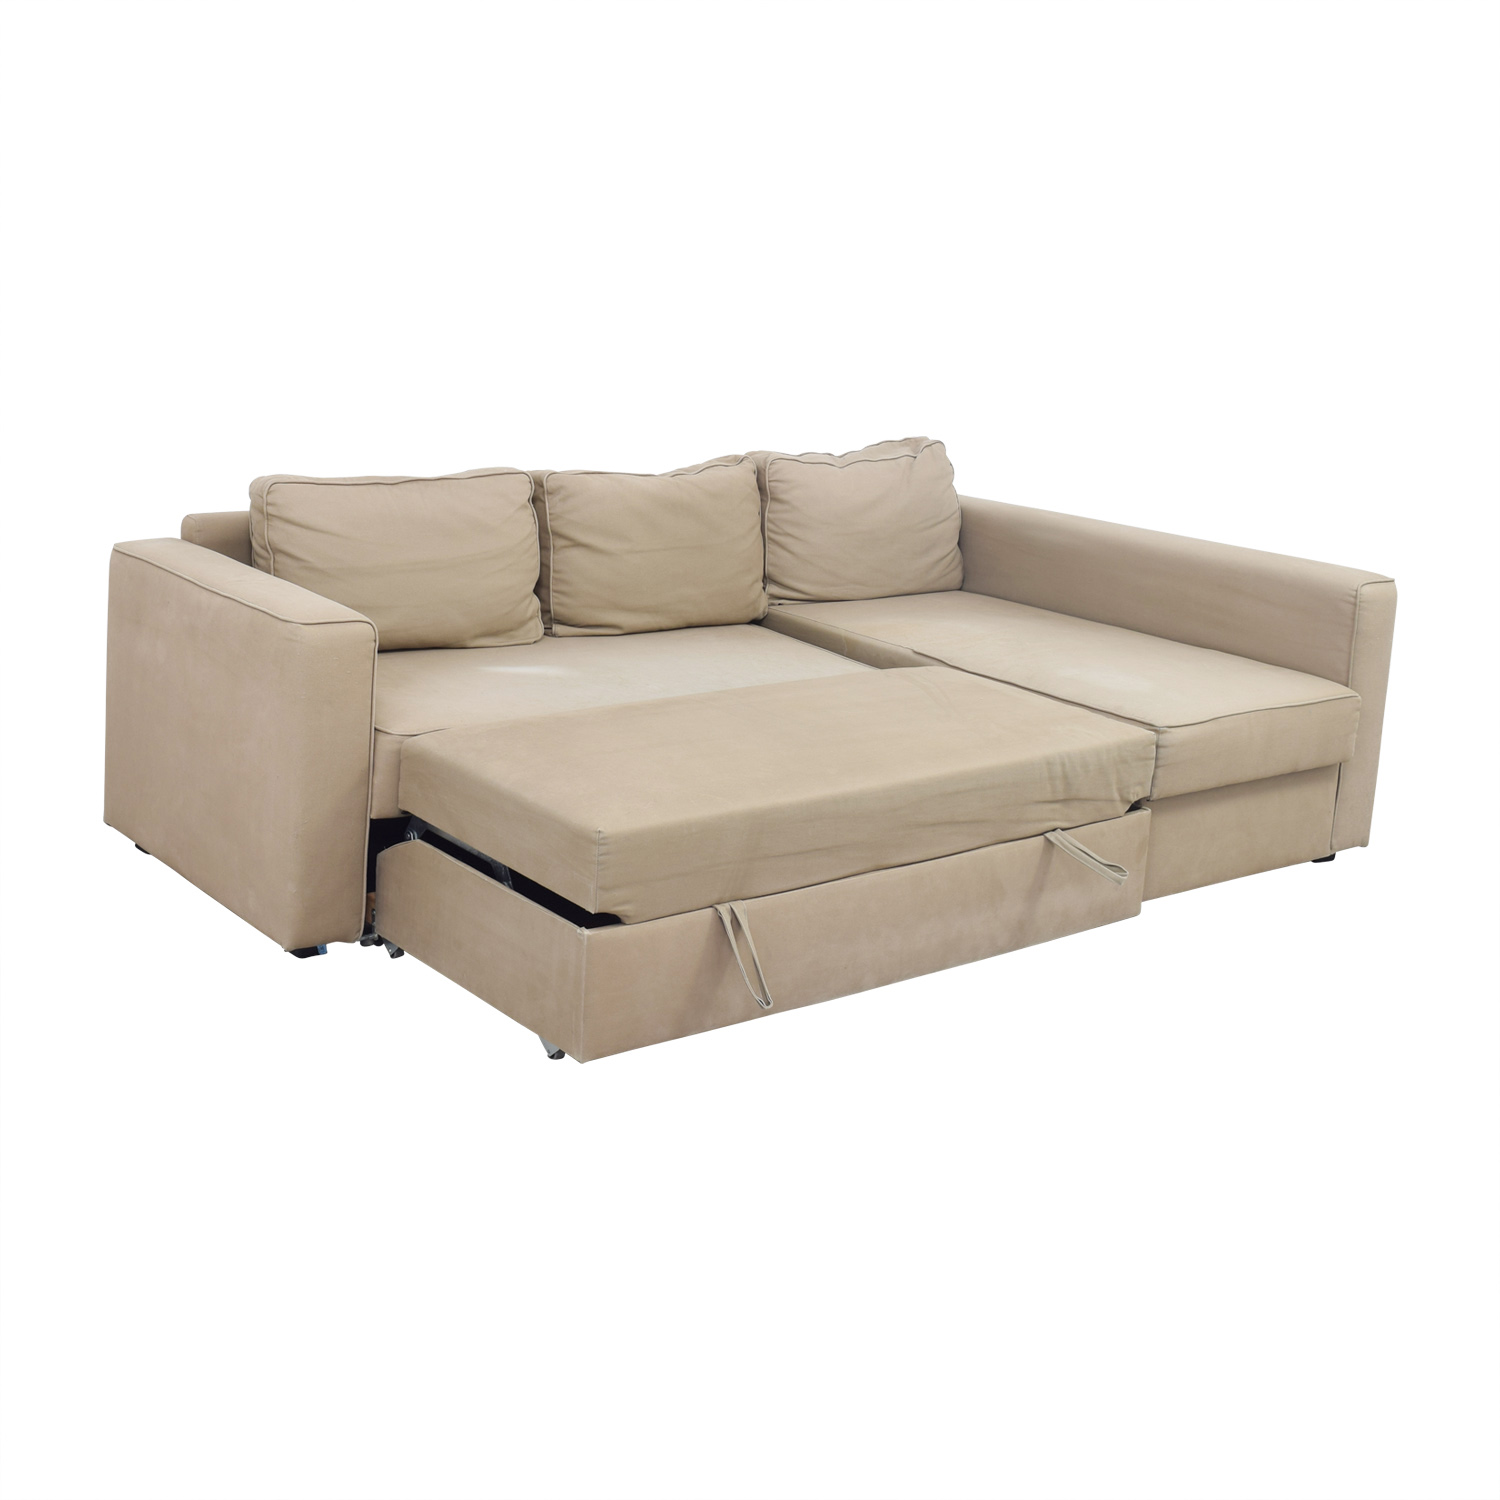 Brilliant 62 Off Ikea Ikea Manstad Sectional Sofa Bed With Storage Sofas Beutiful Home Inspiration Aditmahrainfo